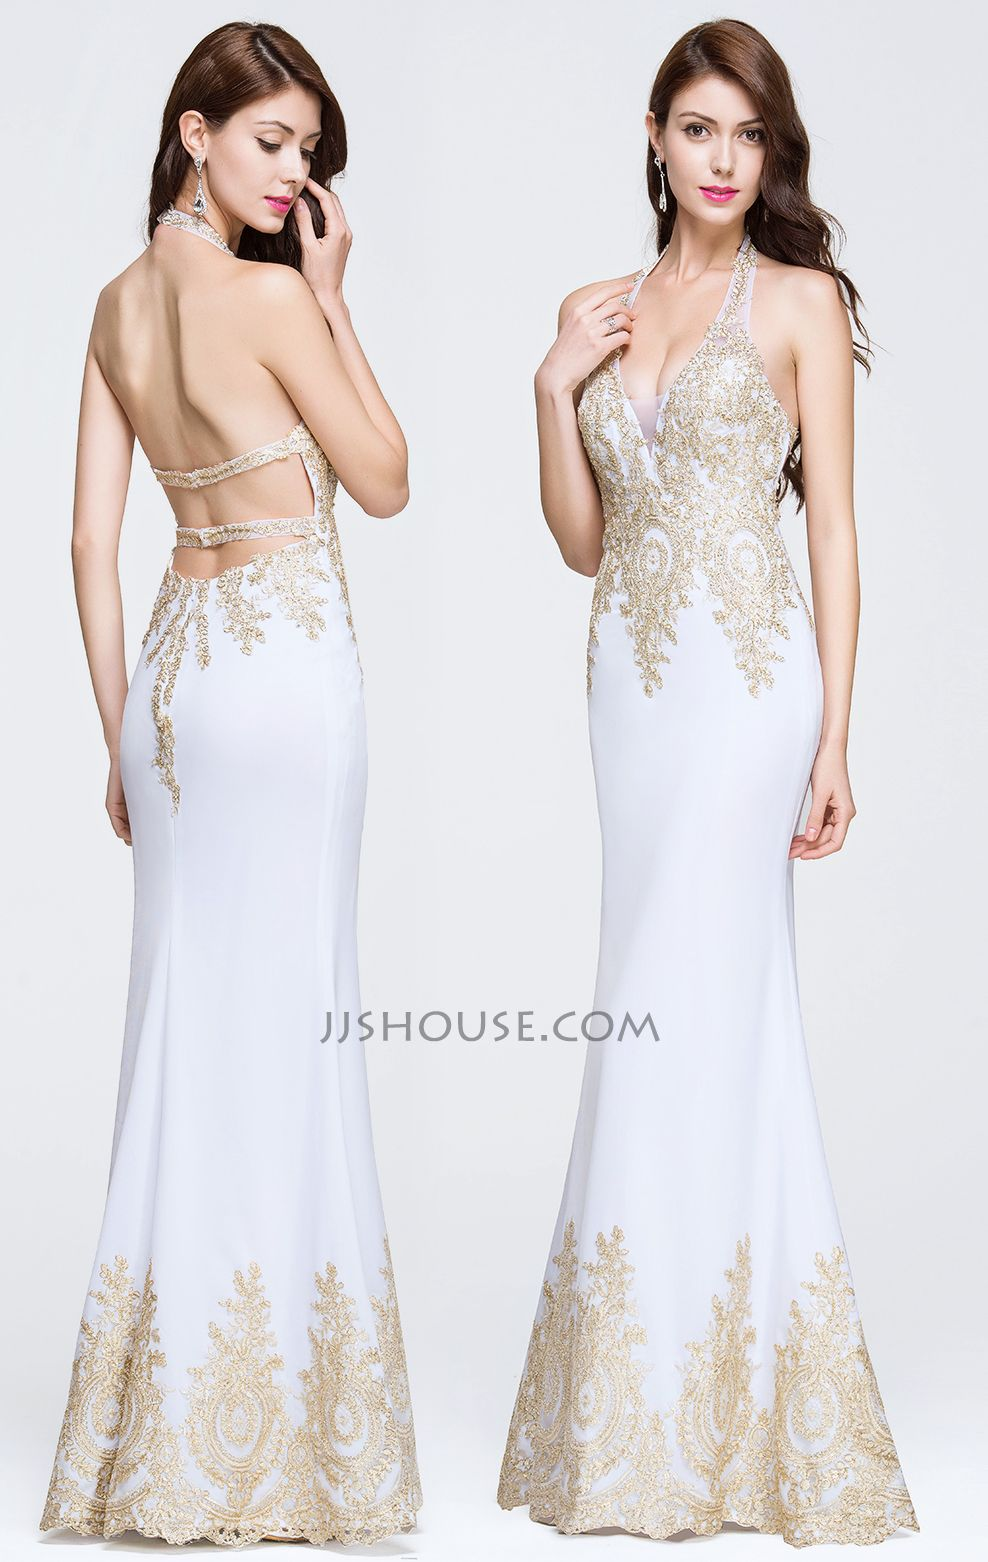 Classically sexy this ravishing dress is the perfect choice for a